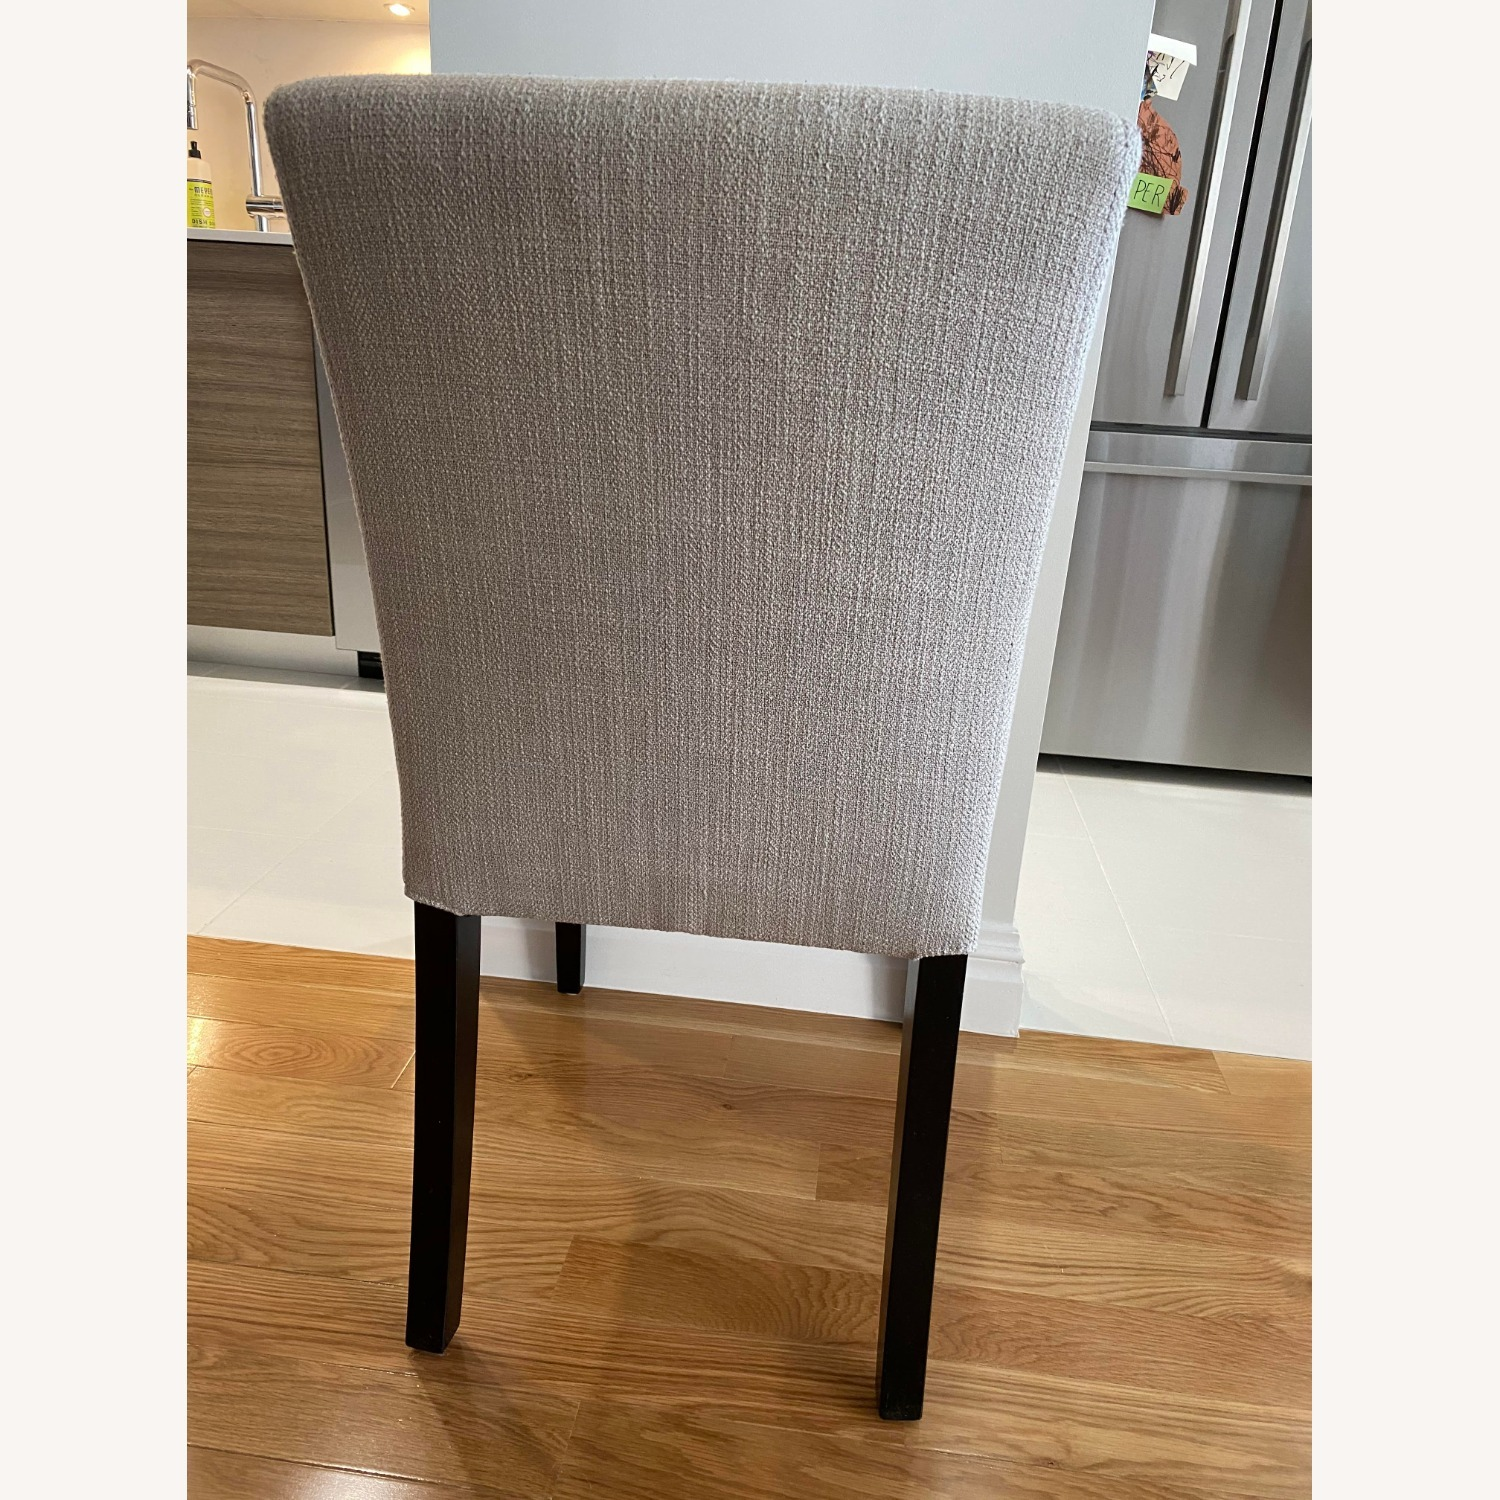 Crate & Barrel Lower Pewter Upholstered Dining Chair - image-3